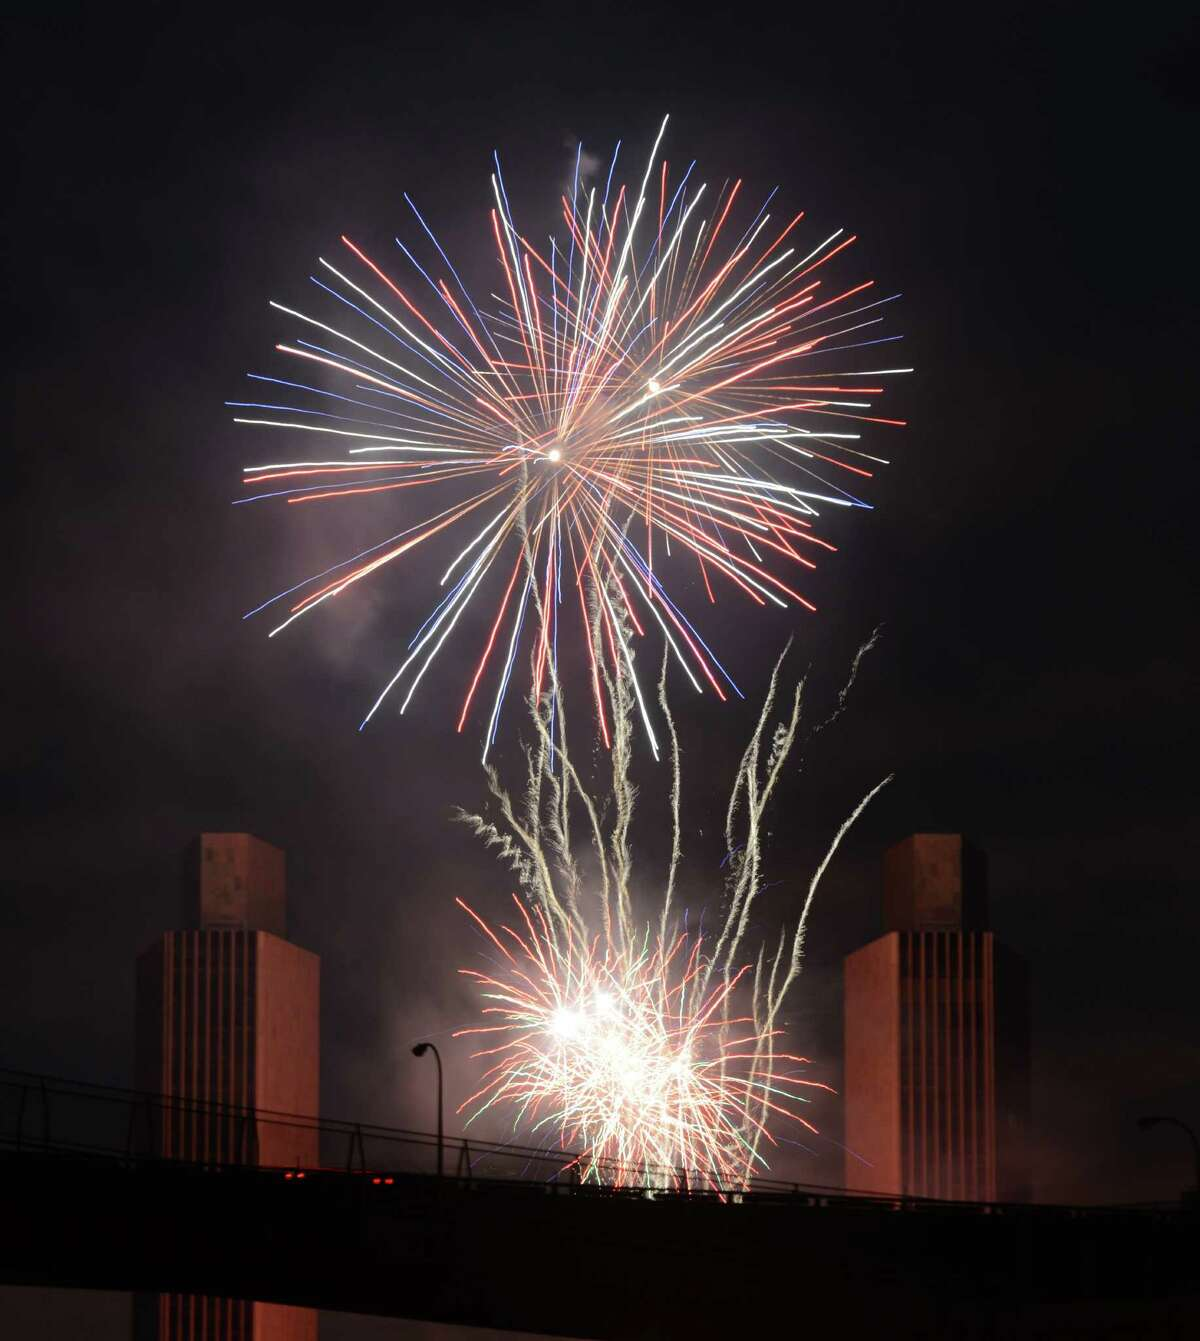 Fireworks fill the sky over Albany during New York State?'s Fourth of July Celebration presented by Price Chopper & Market 32 at the Empire State Plaza on Monday night, July 4, 2016, viewed from Rensselaer, N.Y. (Will Waldron/Times Union)